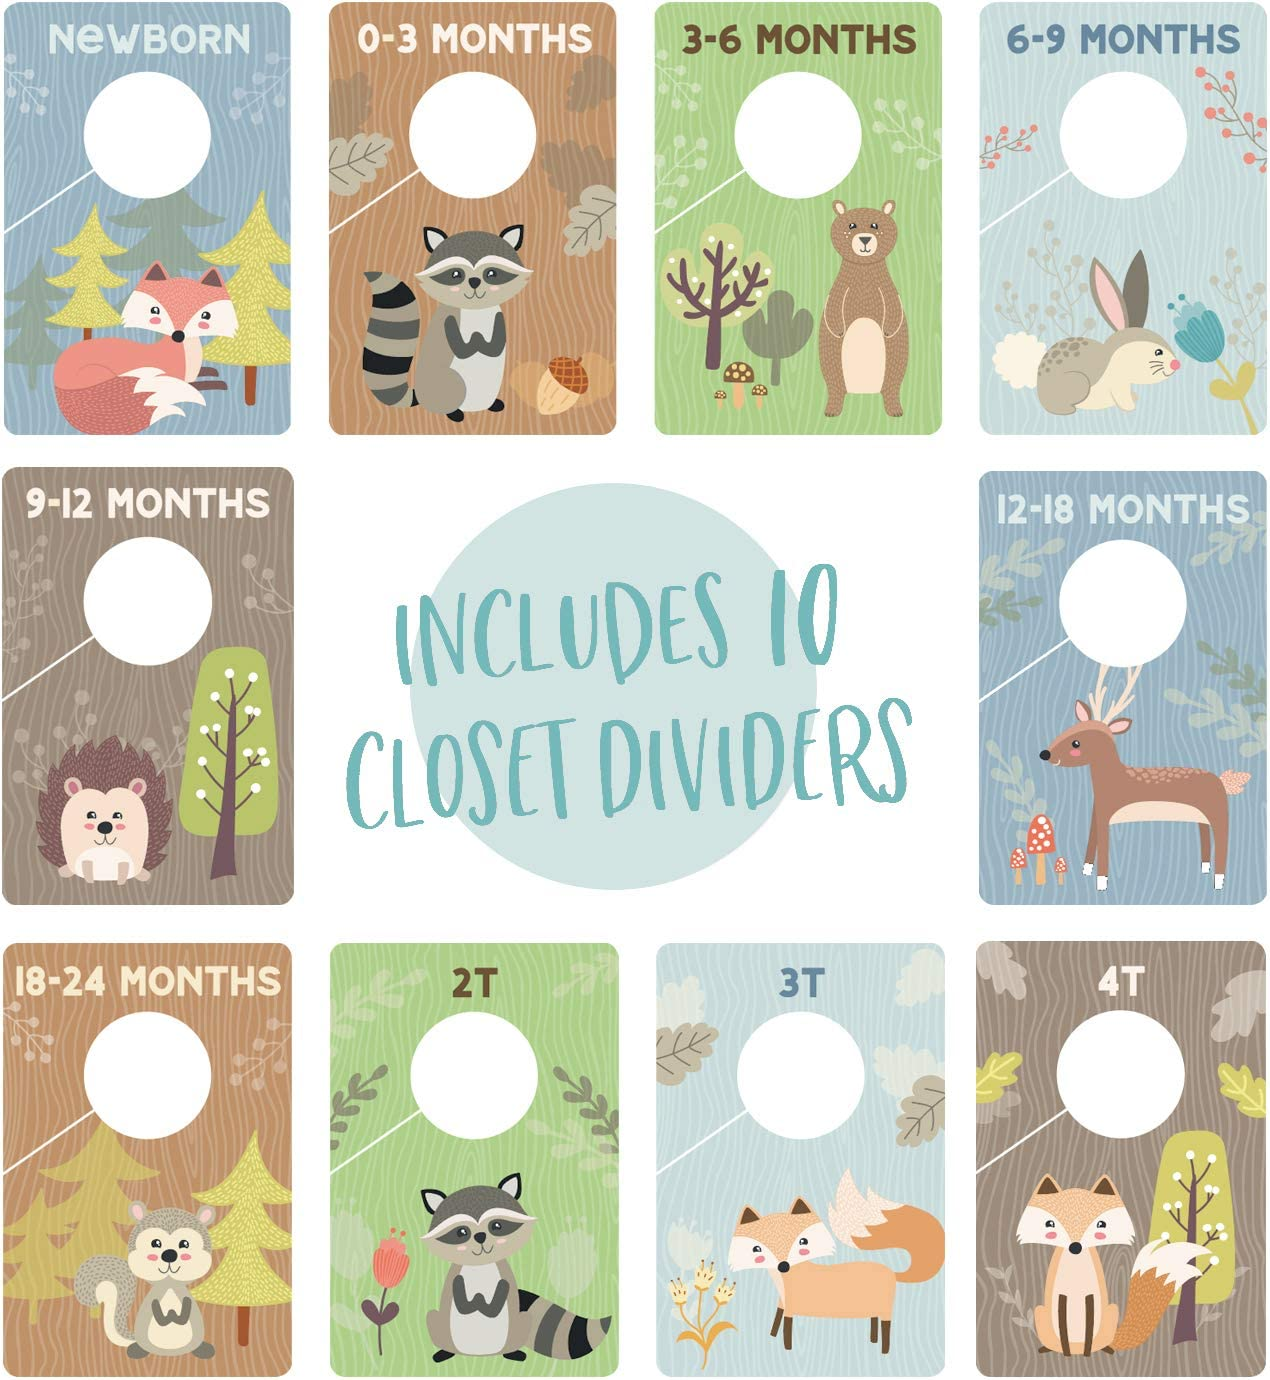 Woodland Closet Clothing Size Dividers//Closet Organizer for Baby Clothes Newborn to 4T Forest Animal Baby Closet Size Dividers